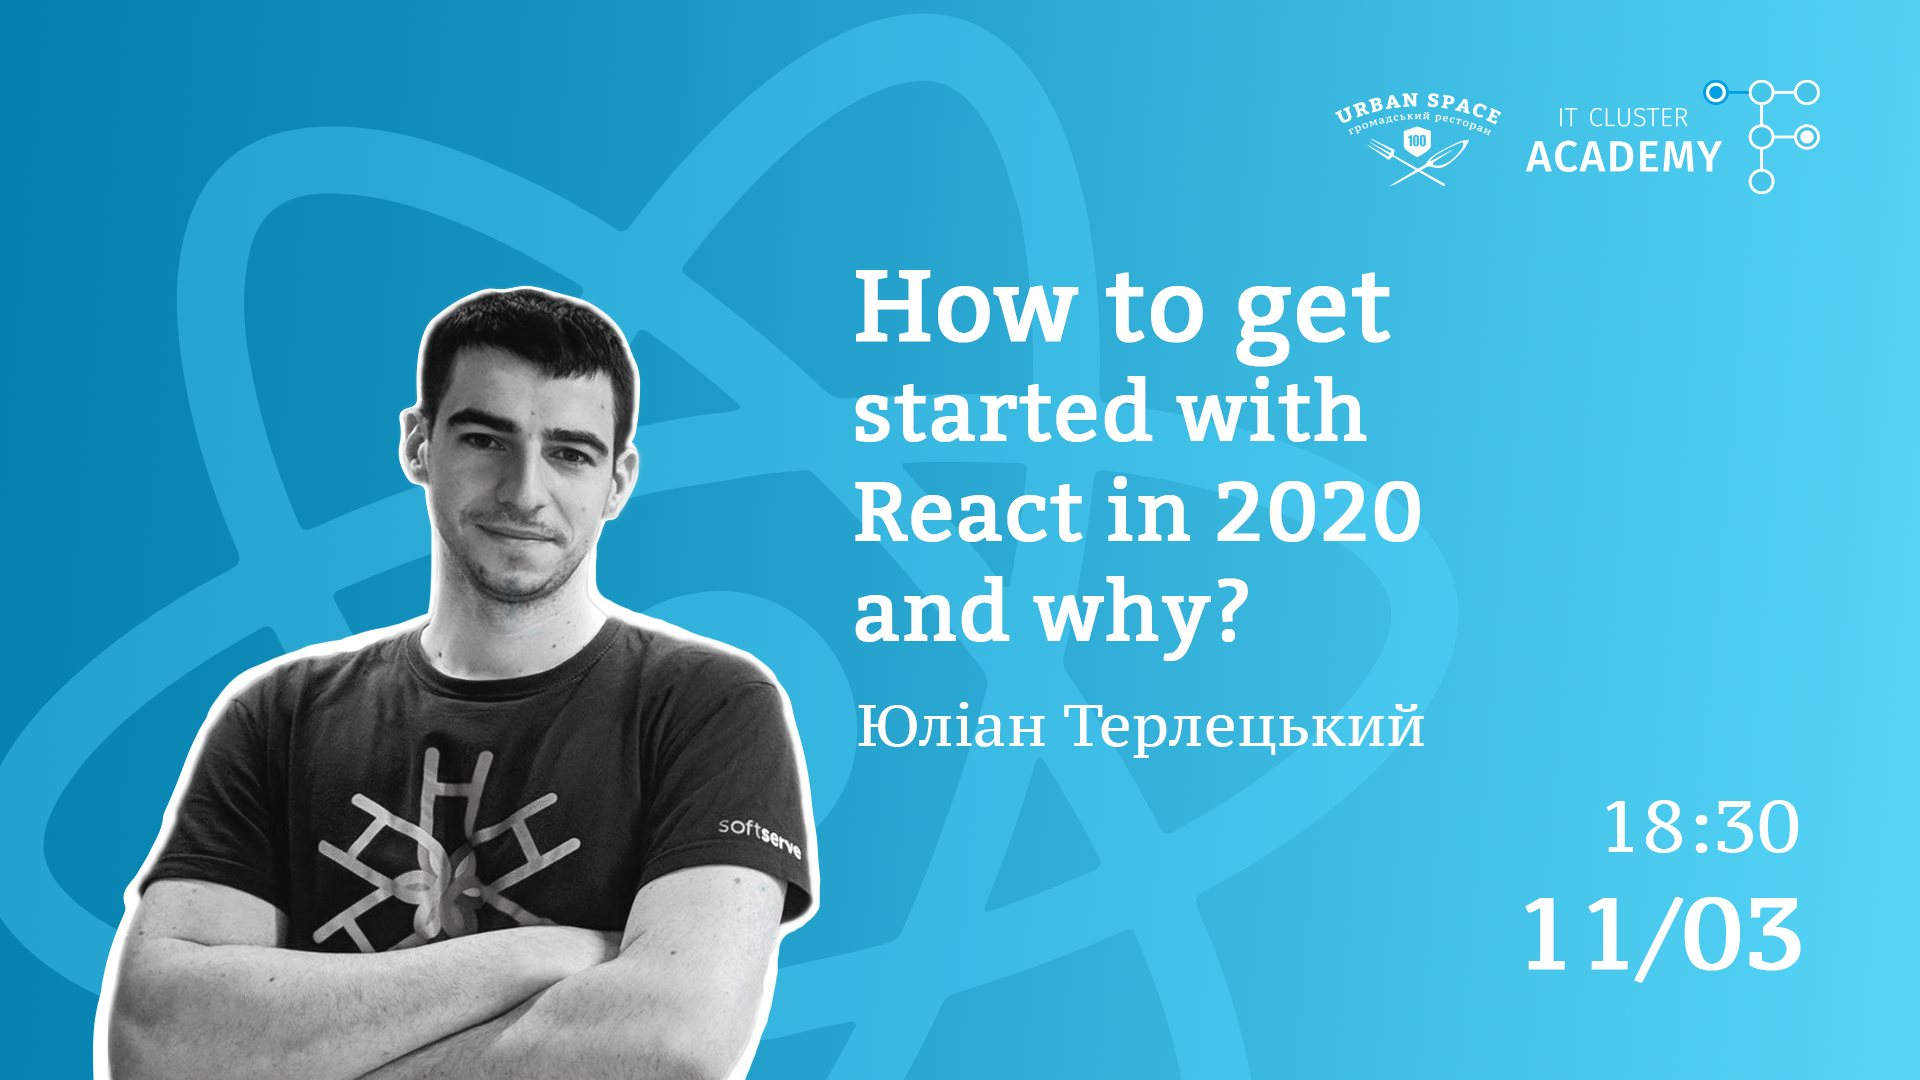 How to get started with React in 2020 and why?